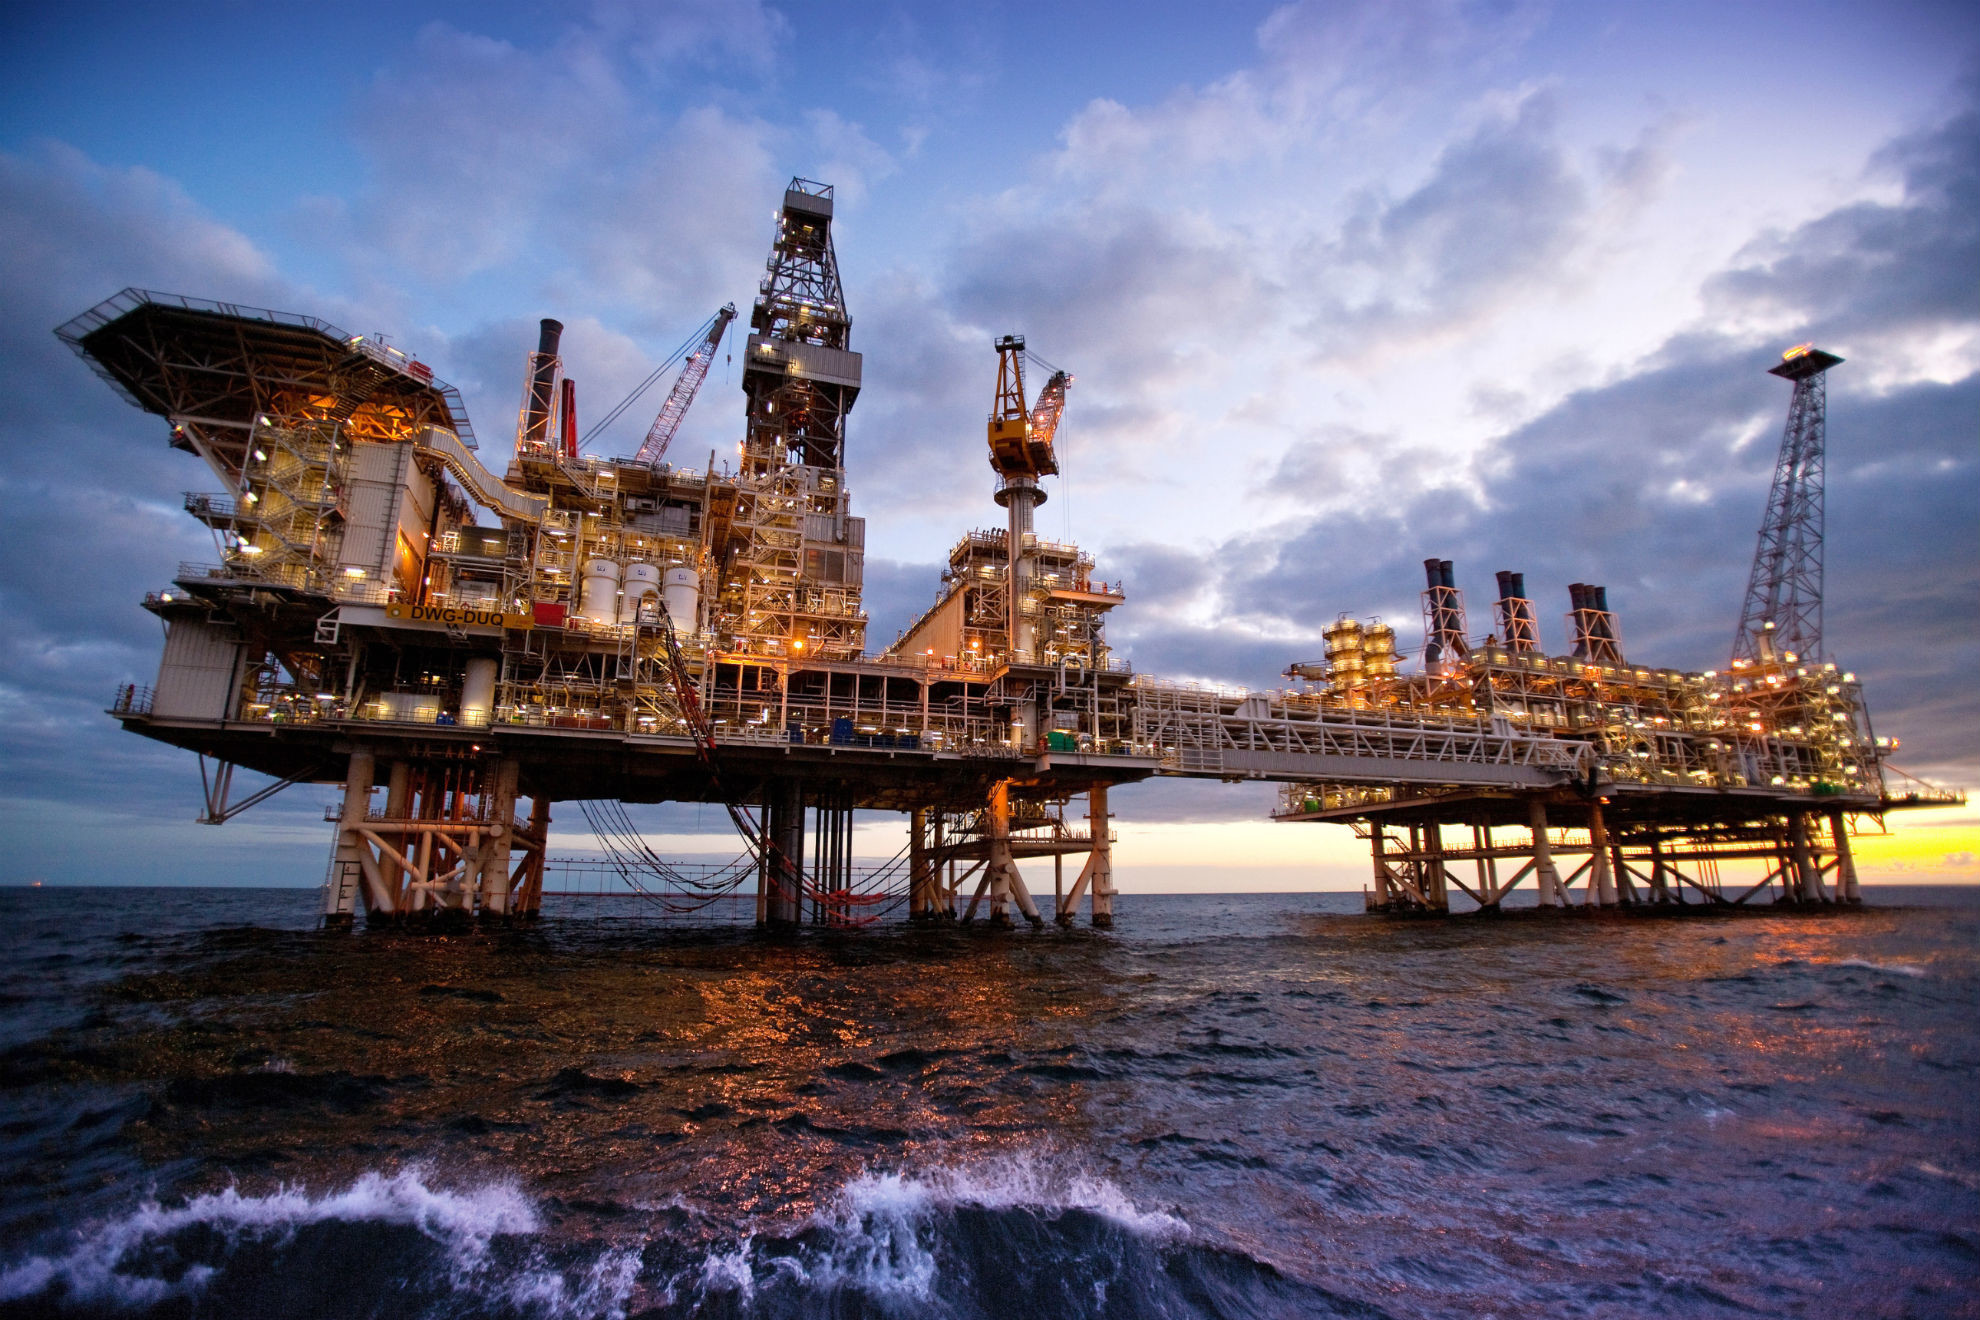 Medical certification and examinations for the Offshore Oil and Gas industry